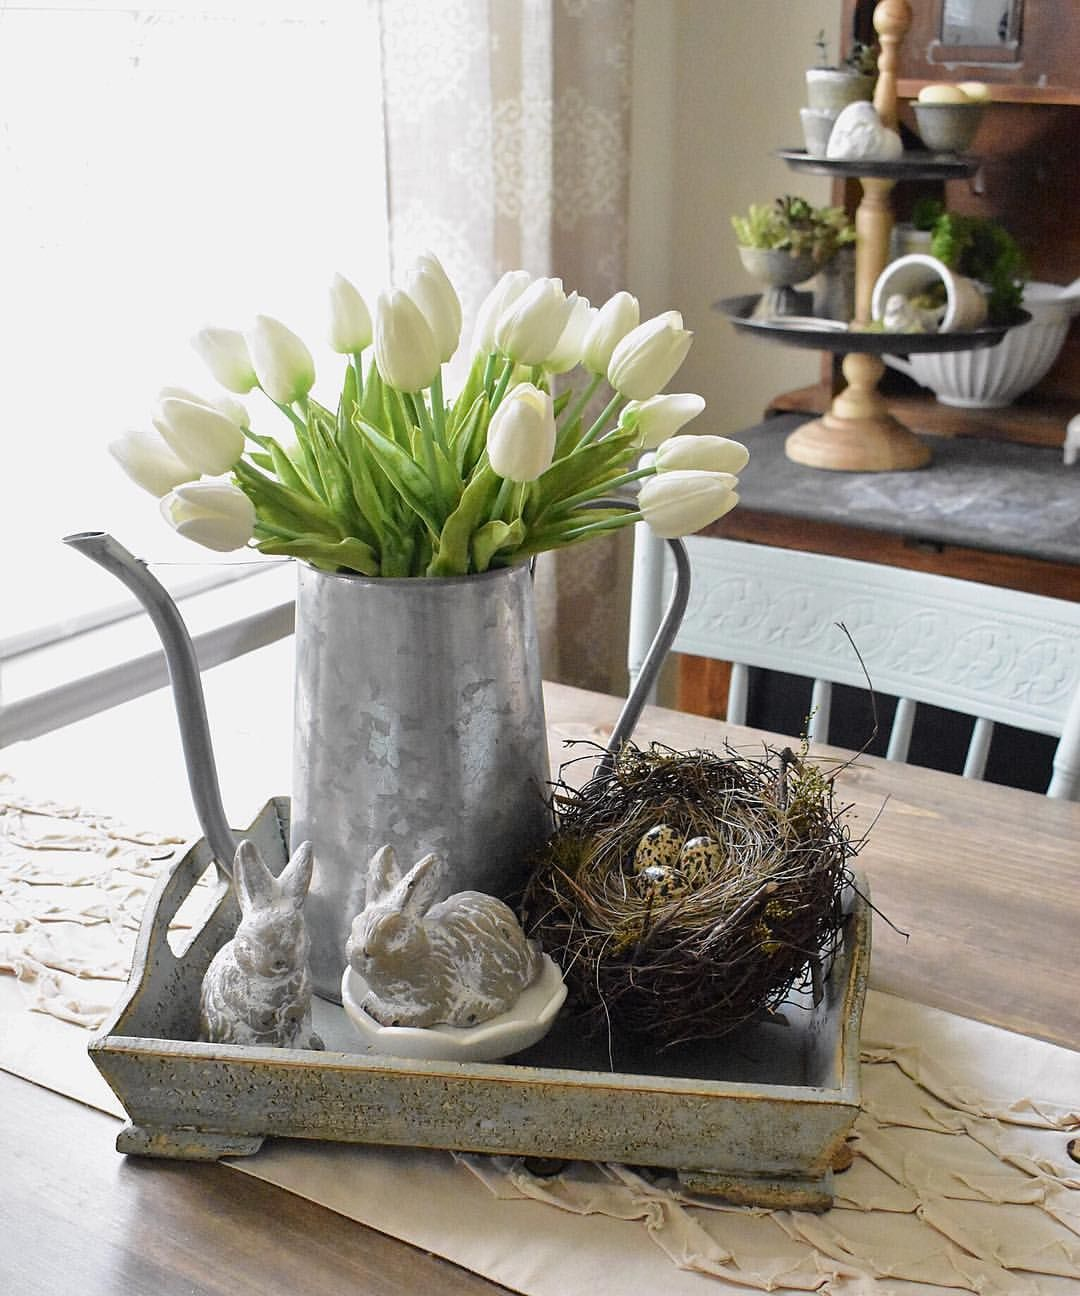 Toptip Liegestuhl Yacer Decorating Living Room For Easter